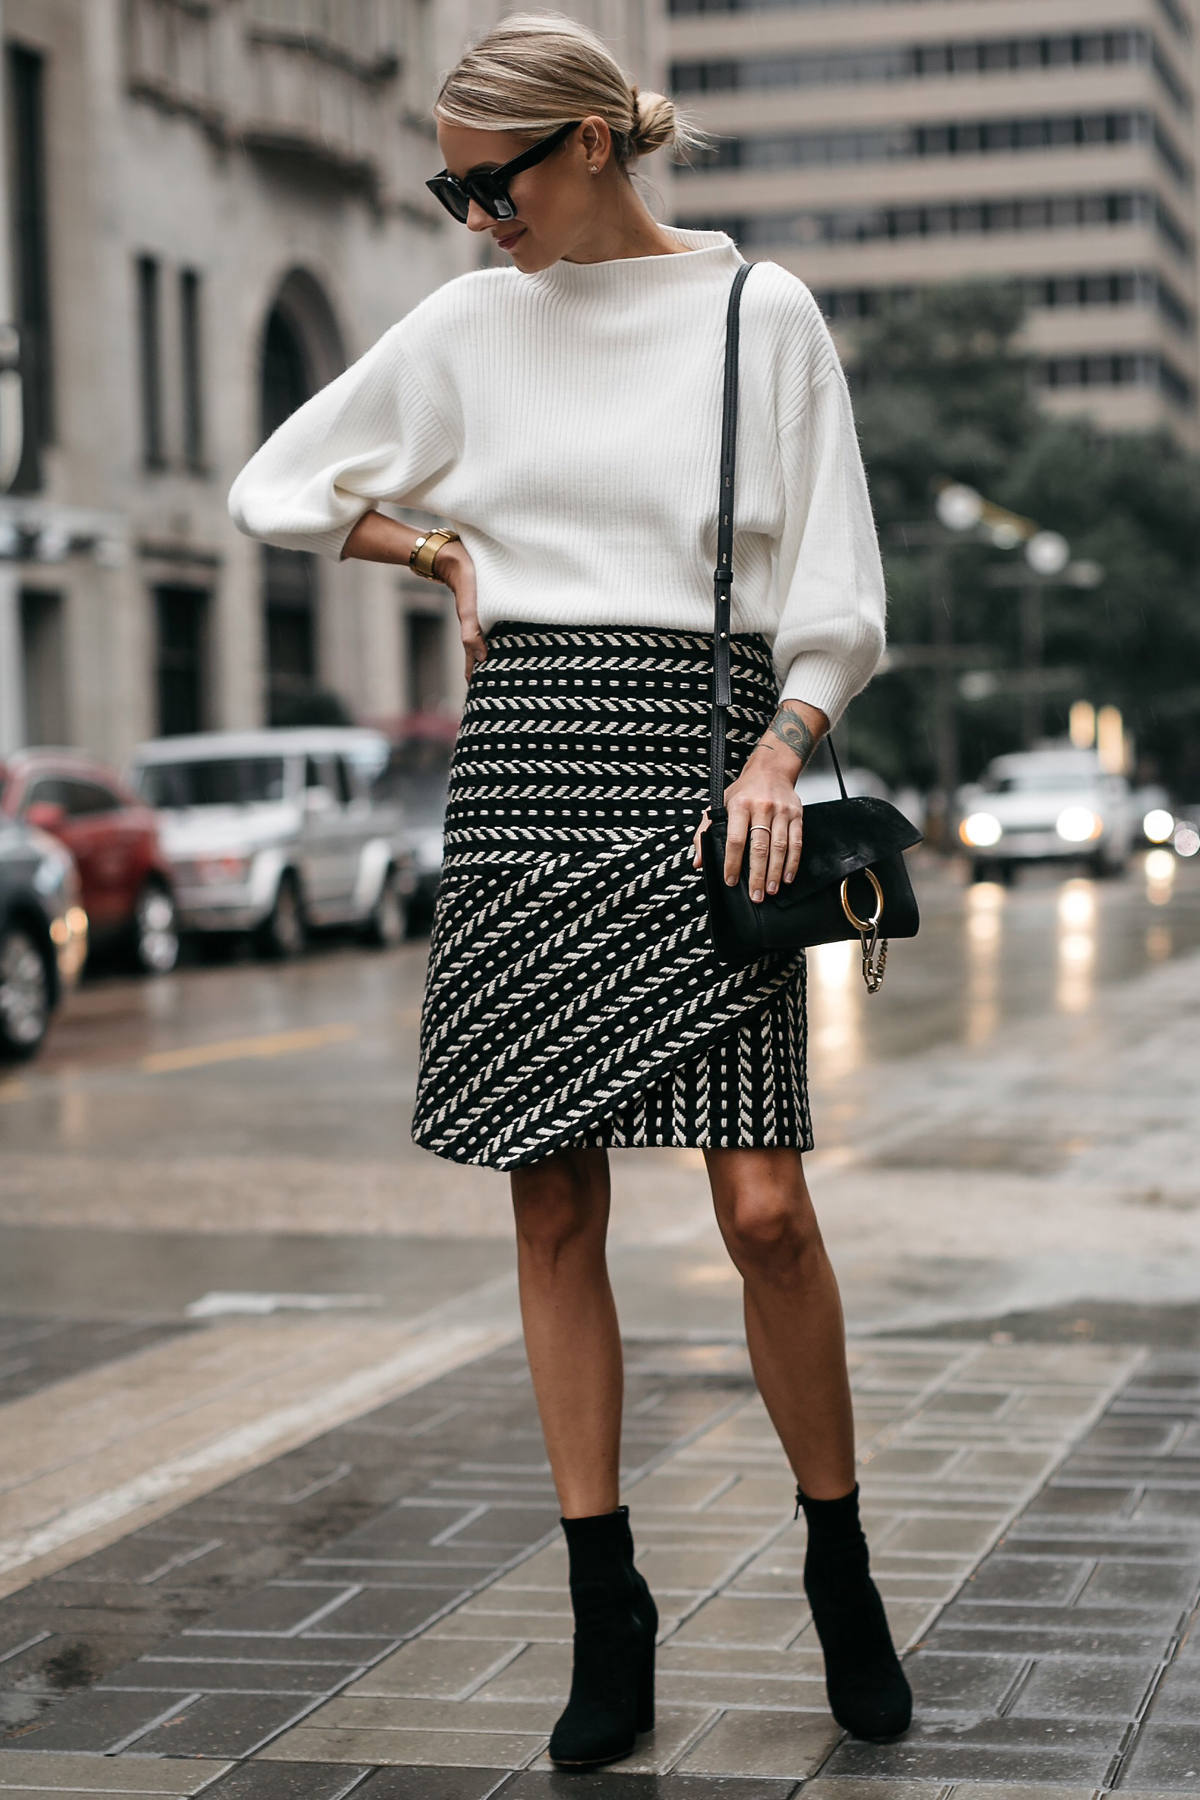 Fashion Jackson White Sweater Black and White Jacquard Skirt Black Ankle Booties Chloe Faye Handbag 2